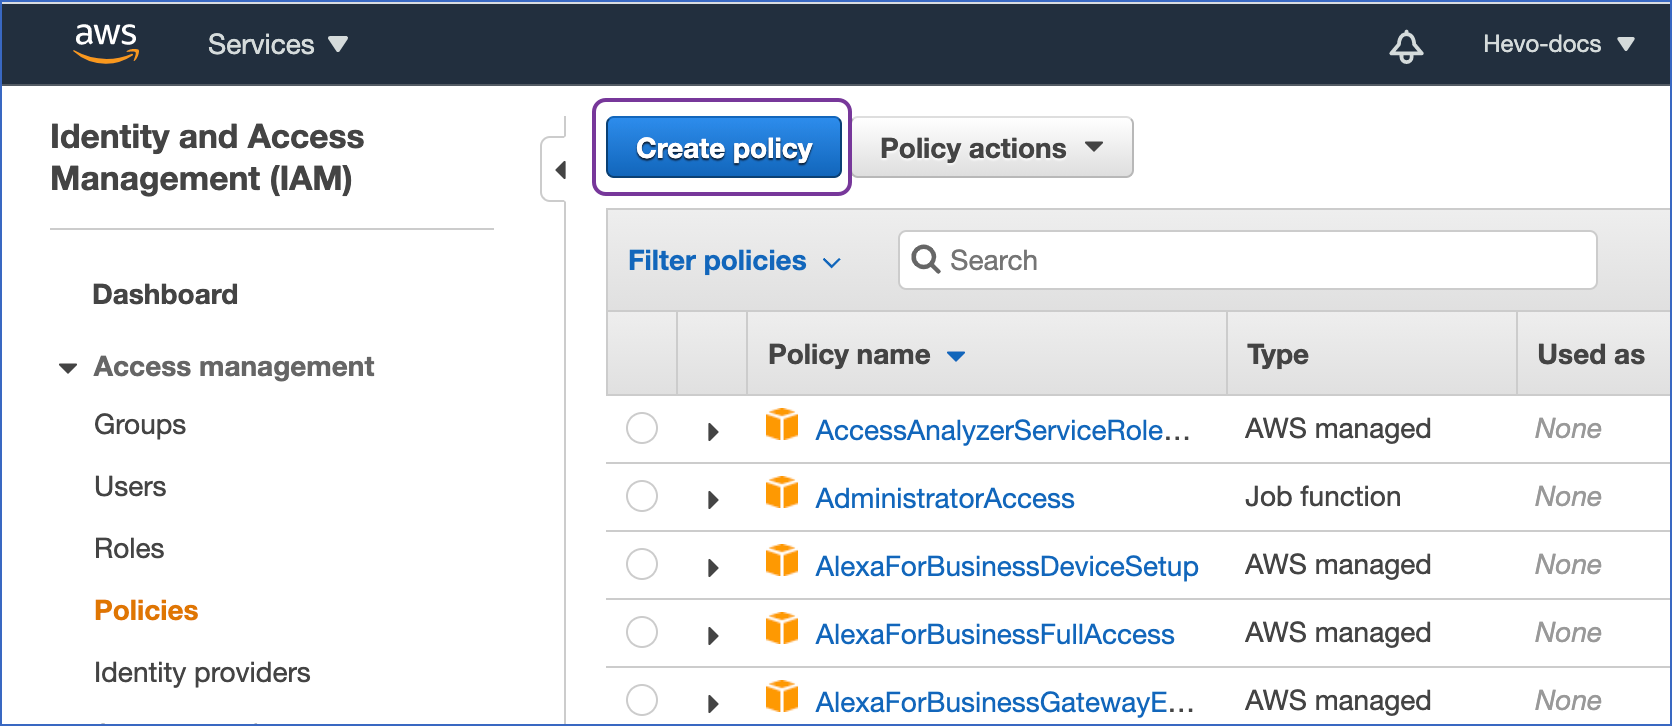 Create Policy link